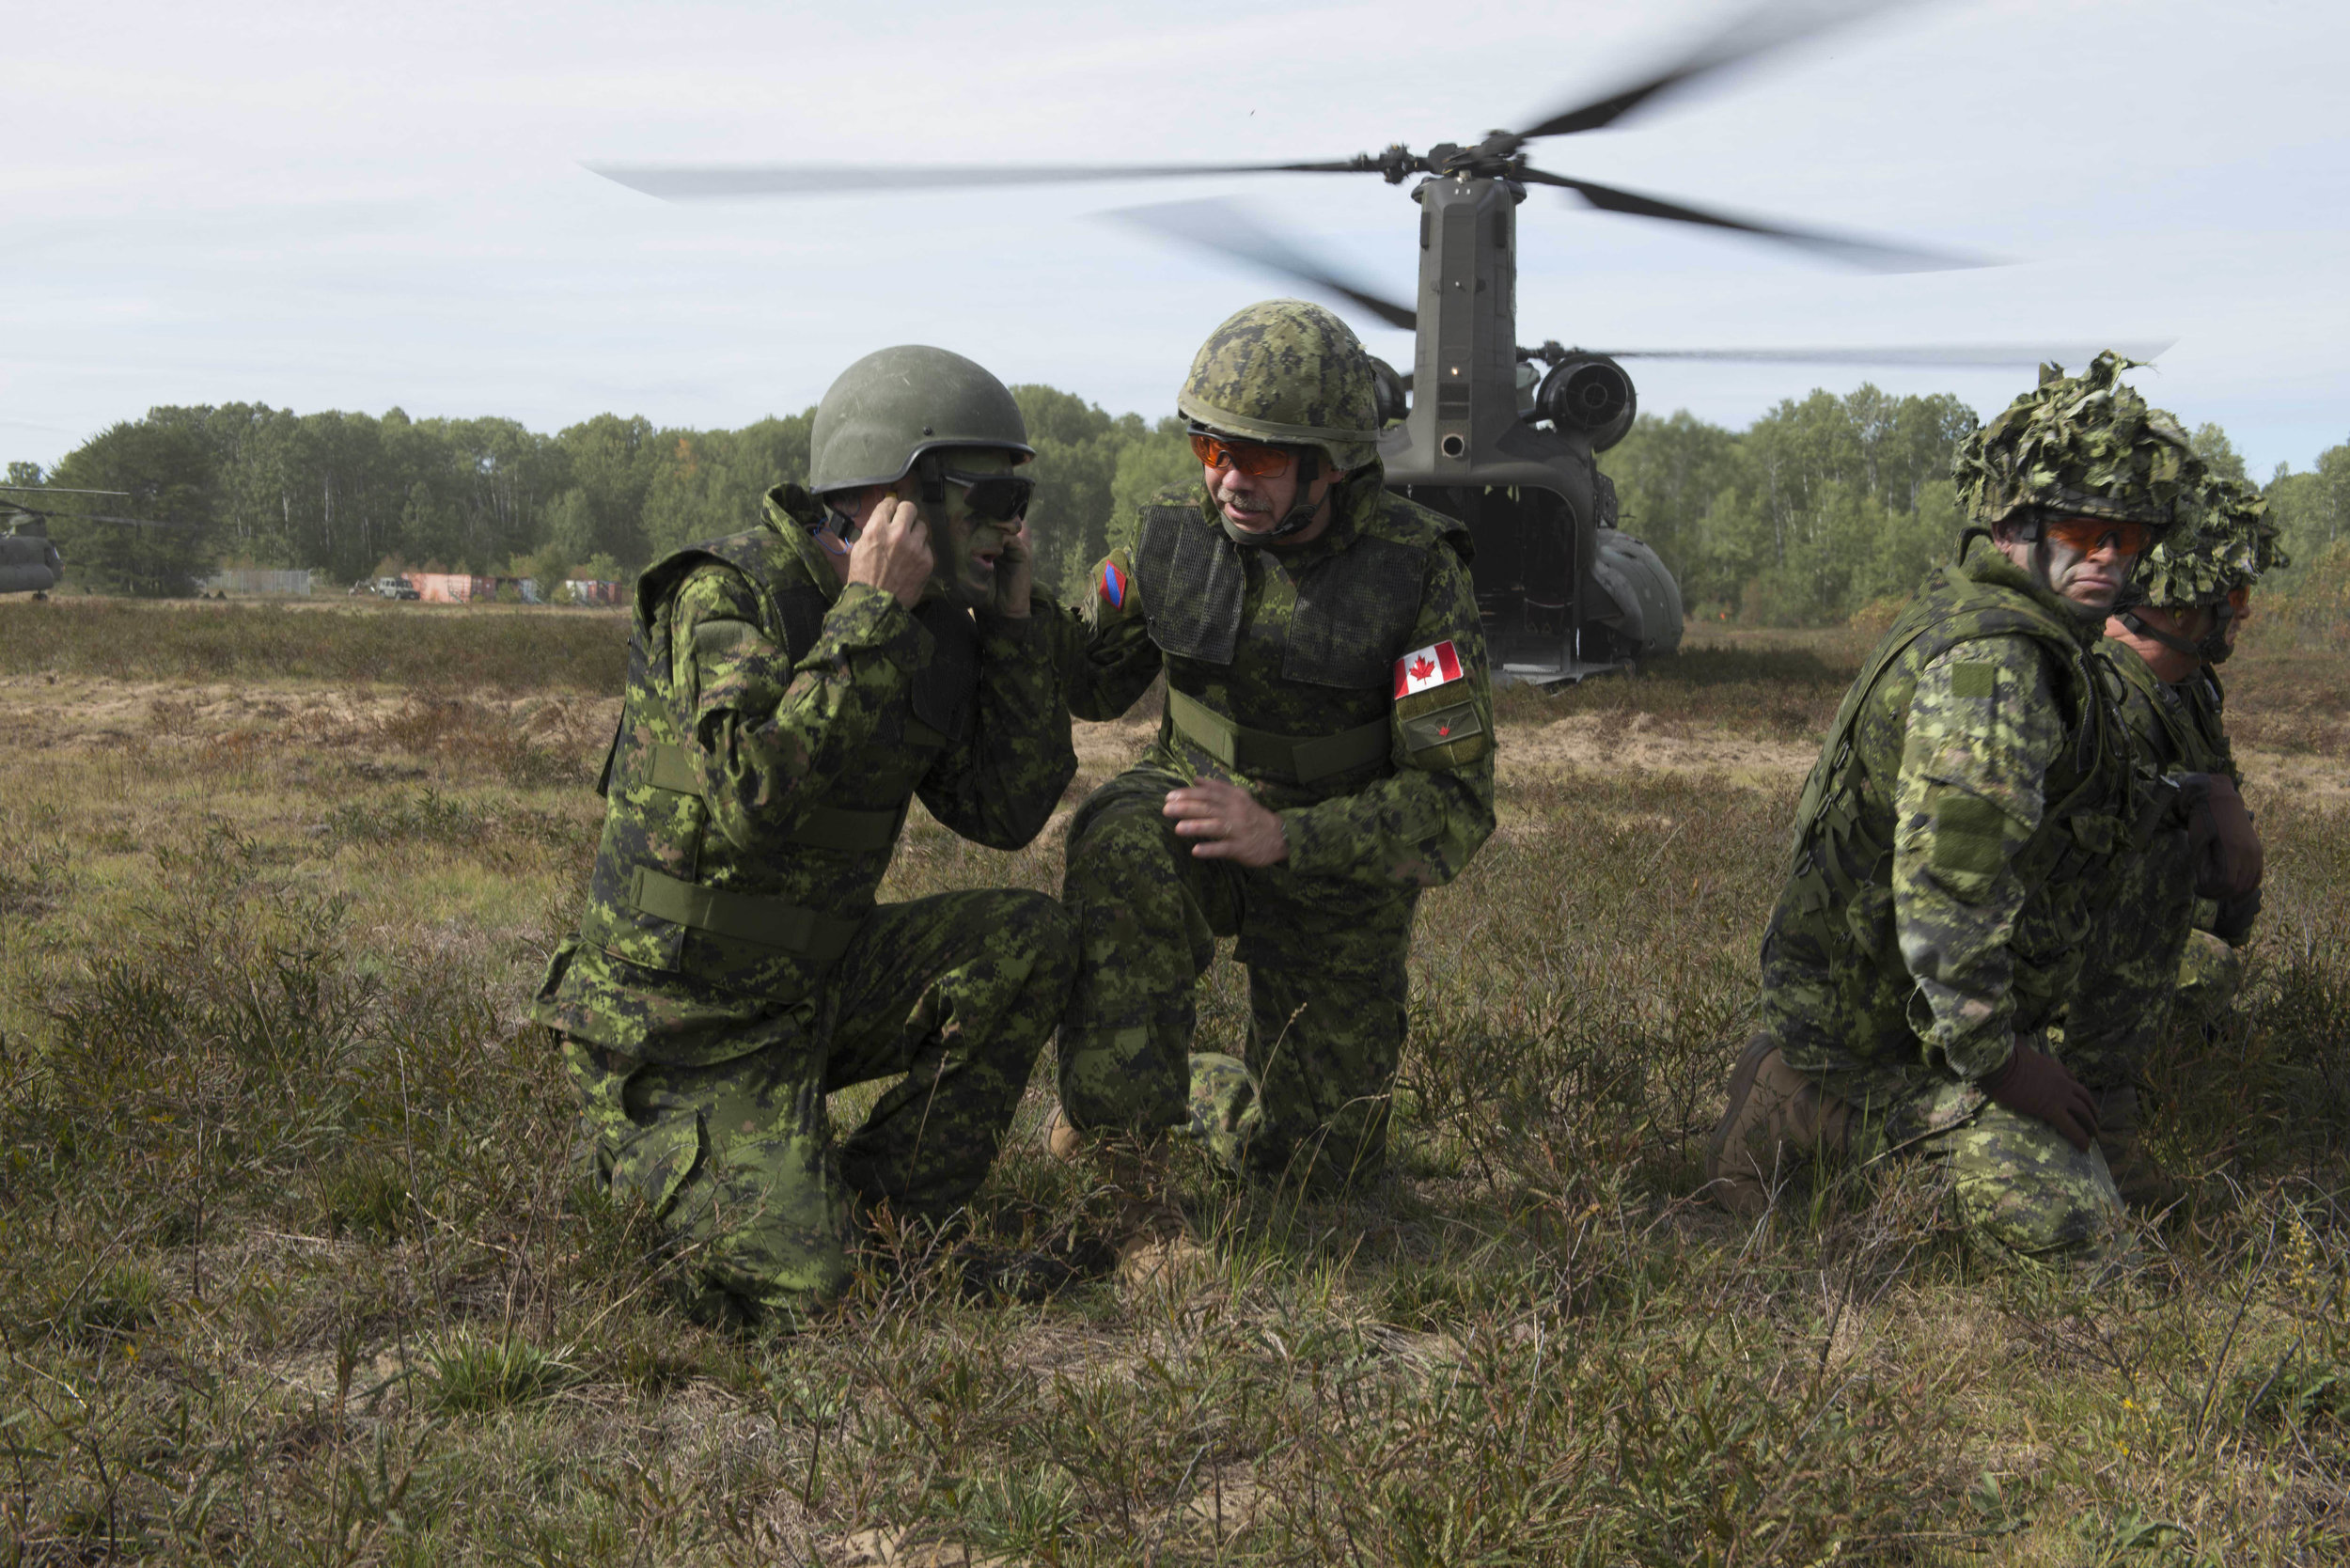 : Exercise Collaborative Spirit aims to familiarize senior government personnel and industry leaders with the combat capabilities that exist in 2 Canadian Mechanized Brigade Group, 4th Canadian Division, and the CAF to showcase its personnel and equipment. LGen Paul Wynnyk (second from left) answers a question from one of the participants after disembarking from a CH-47 Chinook helicopter. (mcpl kurt visser, directorate army public affairs)